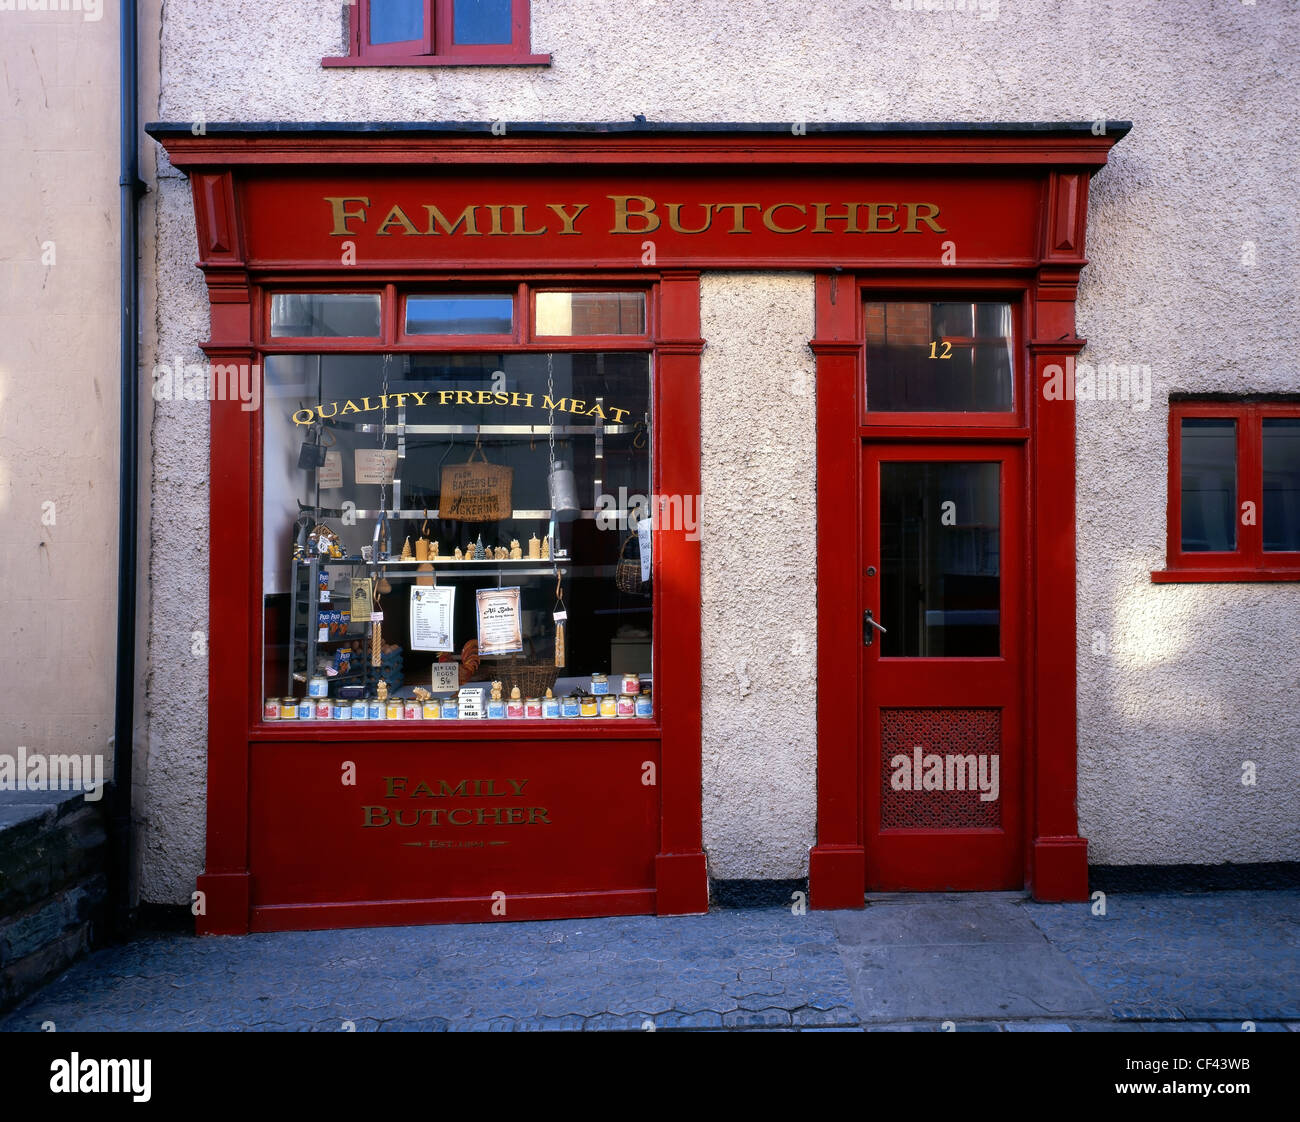 A traditional Family Butcher shop in the small seaside village of Staithes. - Stock Image